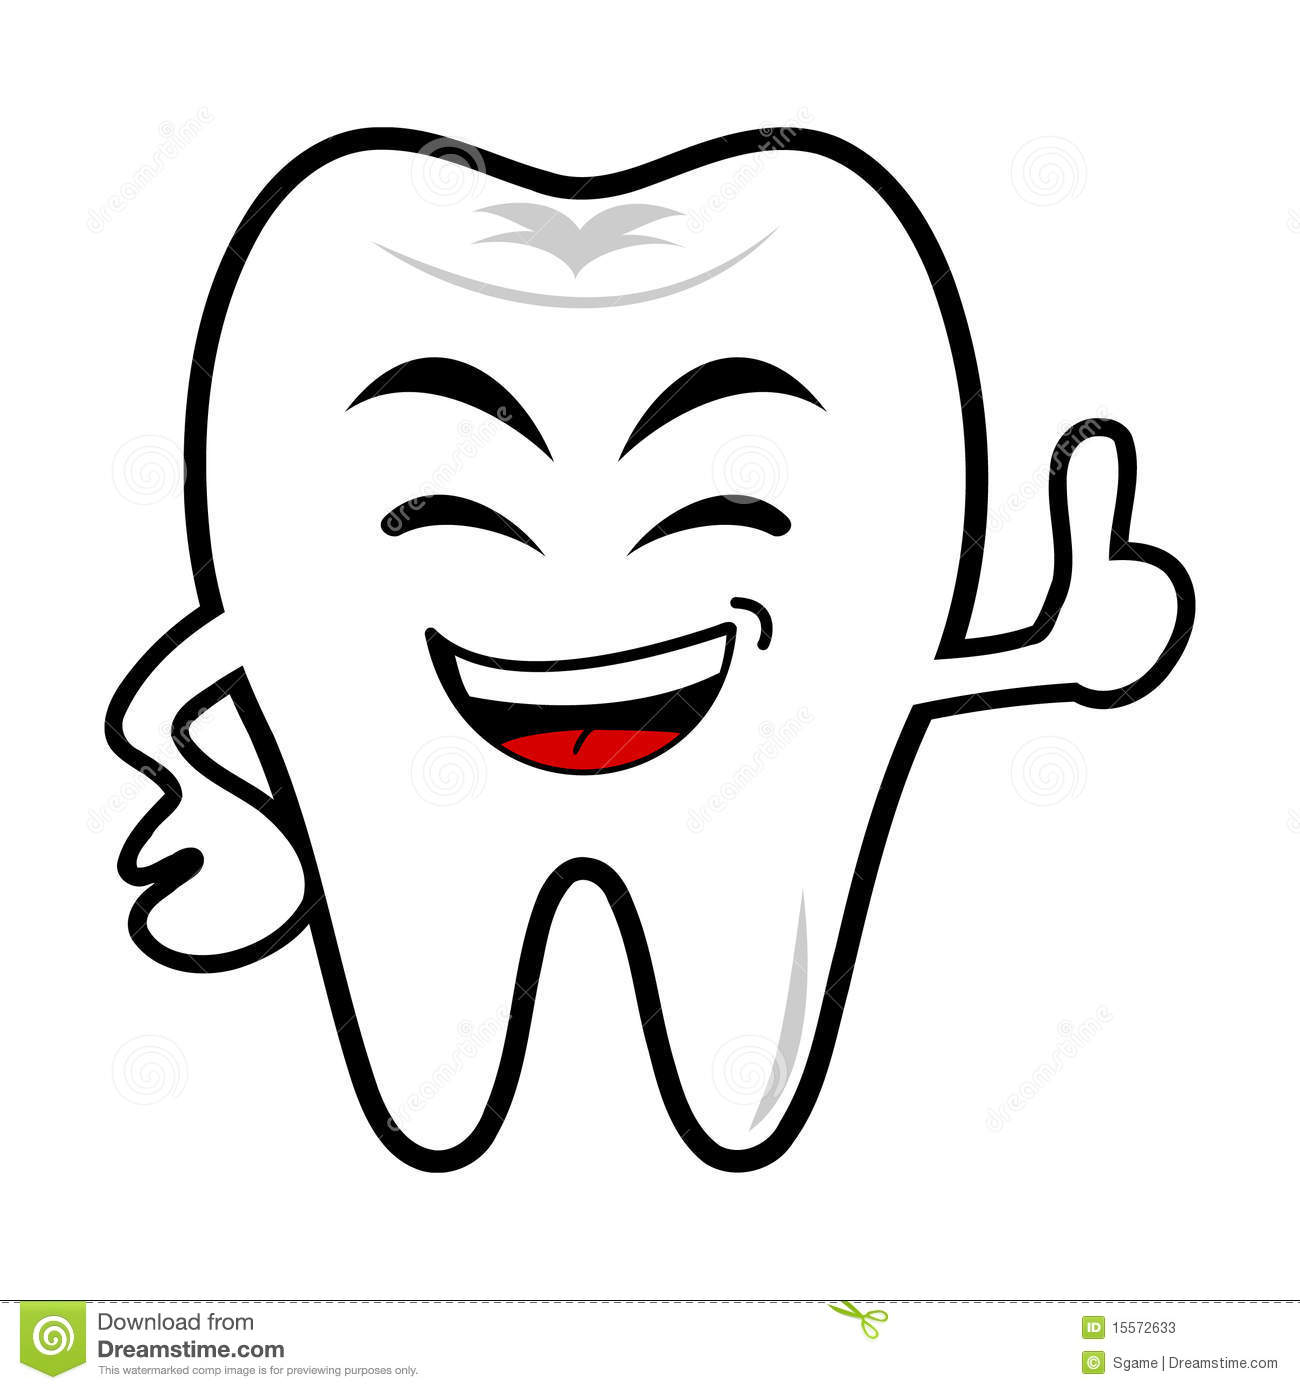 clipart picture of a tooth - photo #49